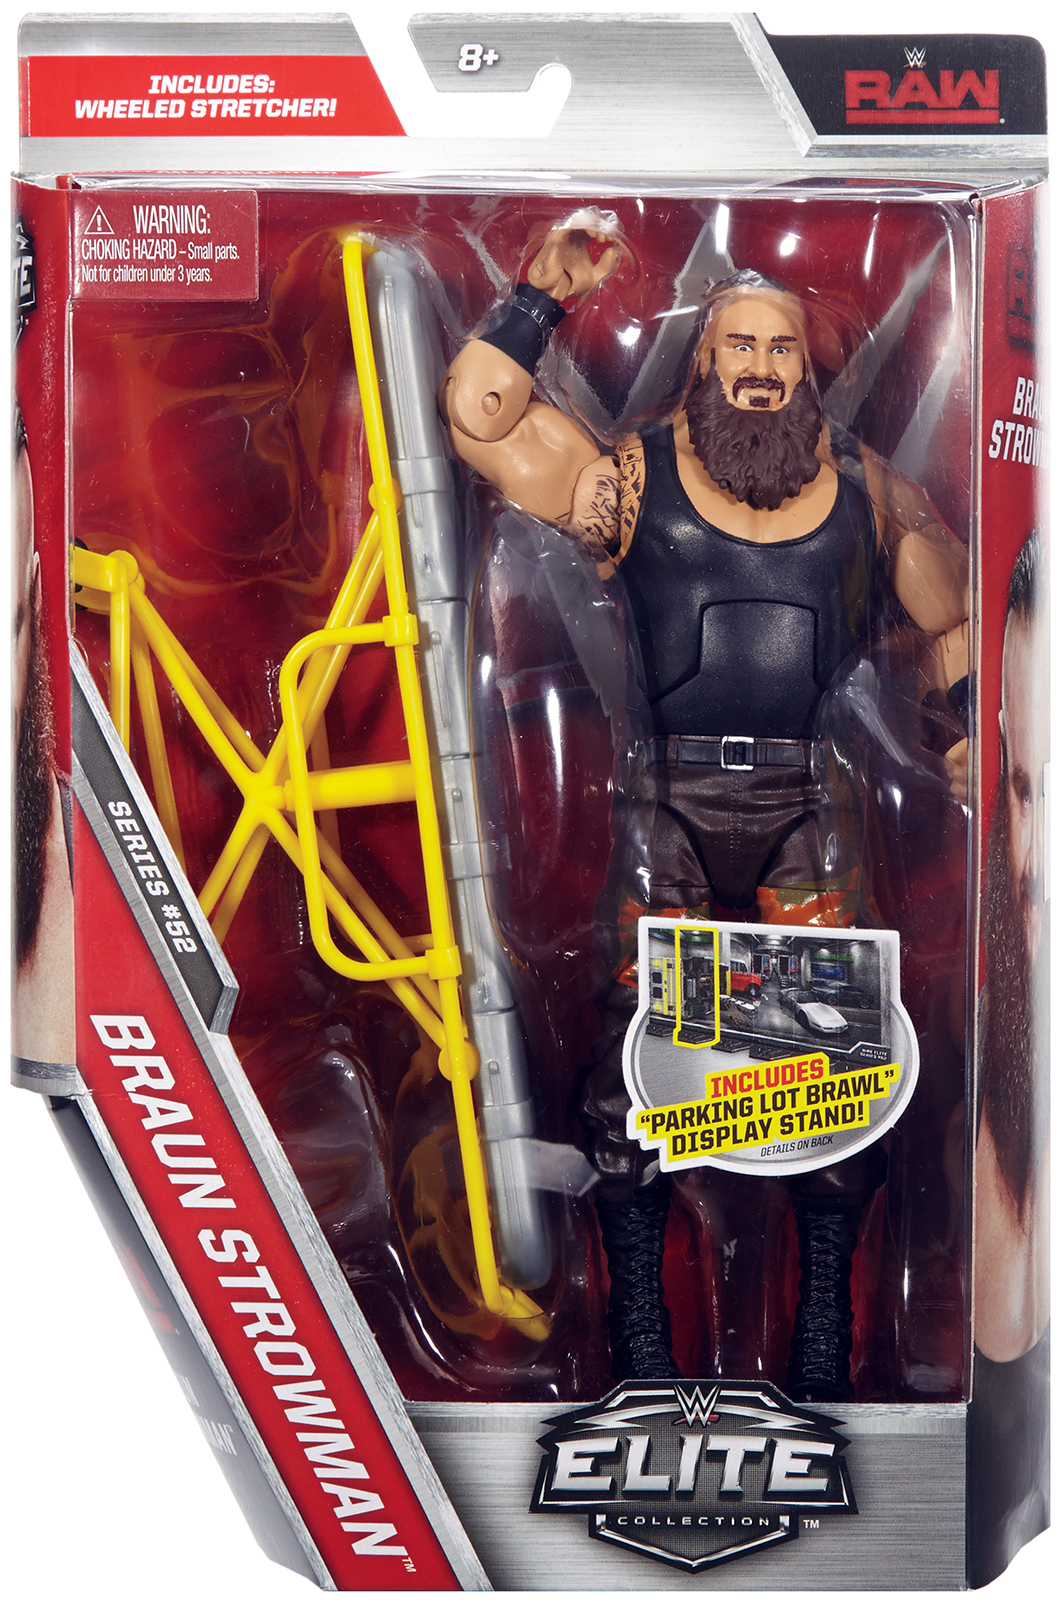 Braun Strowman WWE Elite 52 Toy Wrestling Action Figure by Mattel